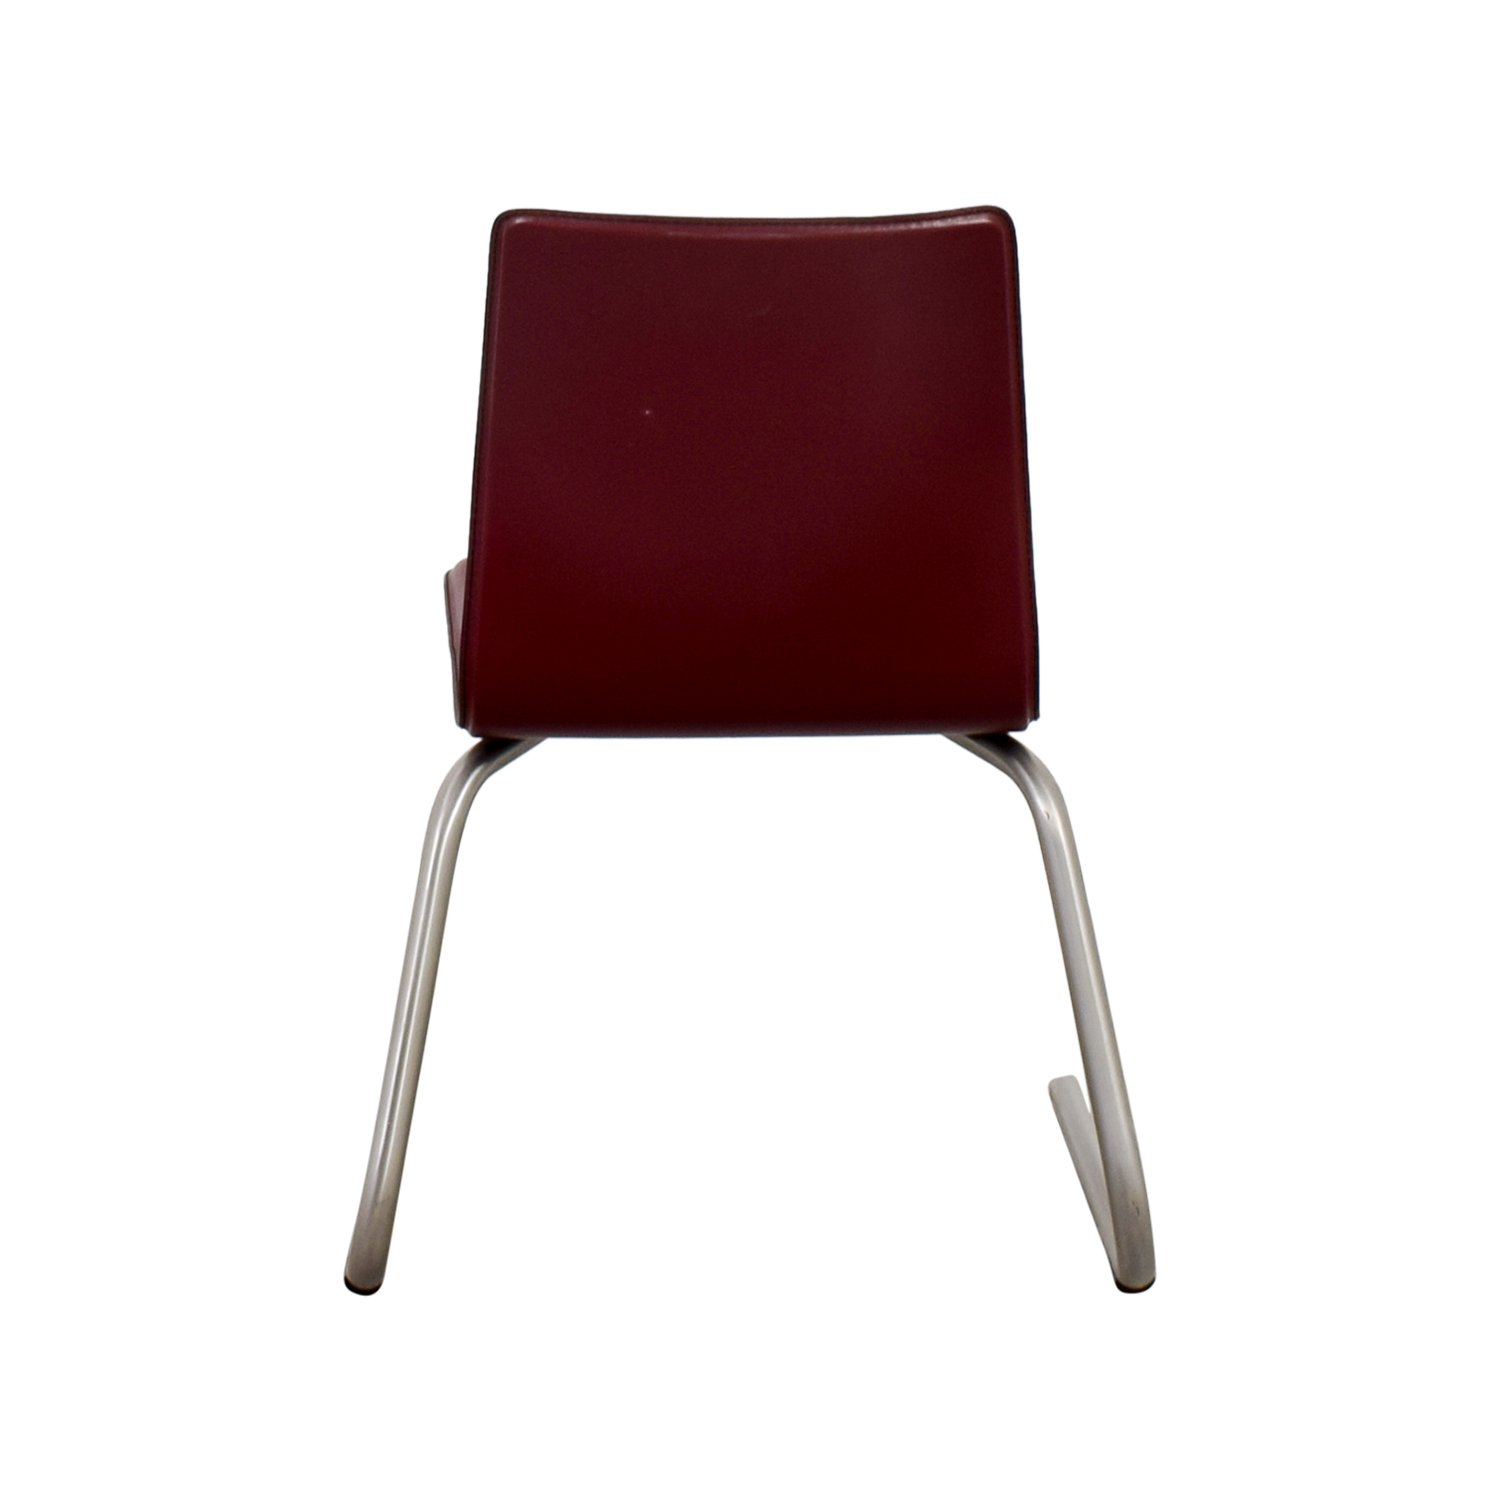 buy Frighetto Industries Modern Red Faux Leather Chair Frighetto Industries Chairs